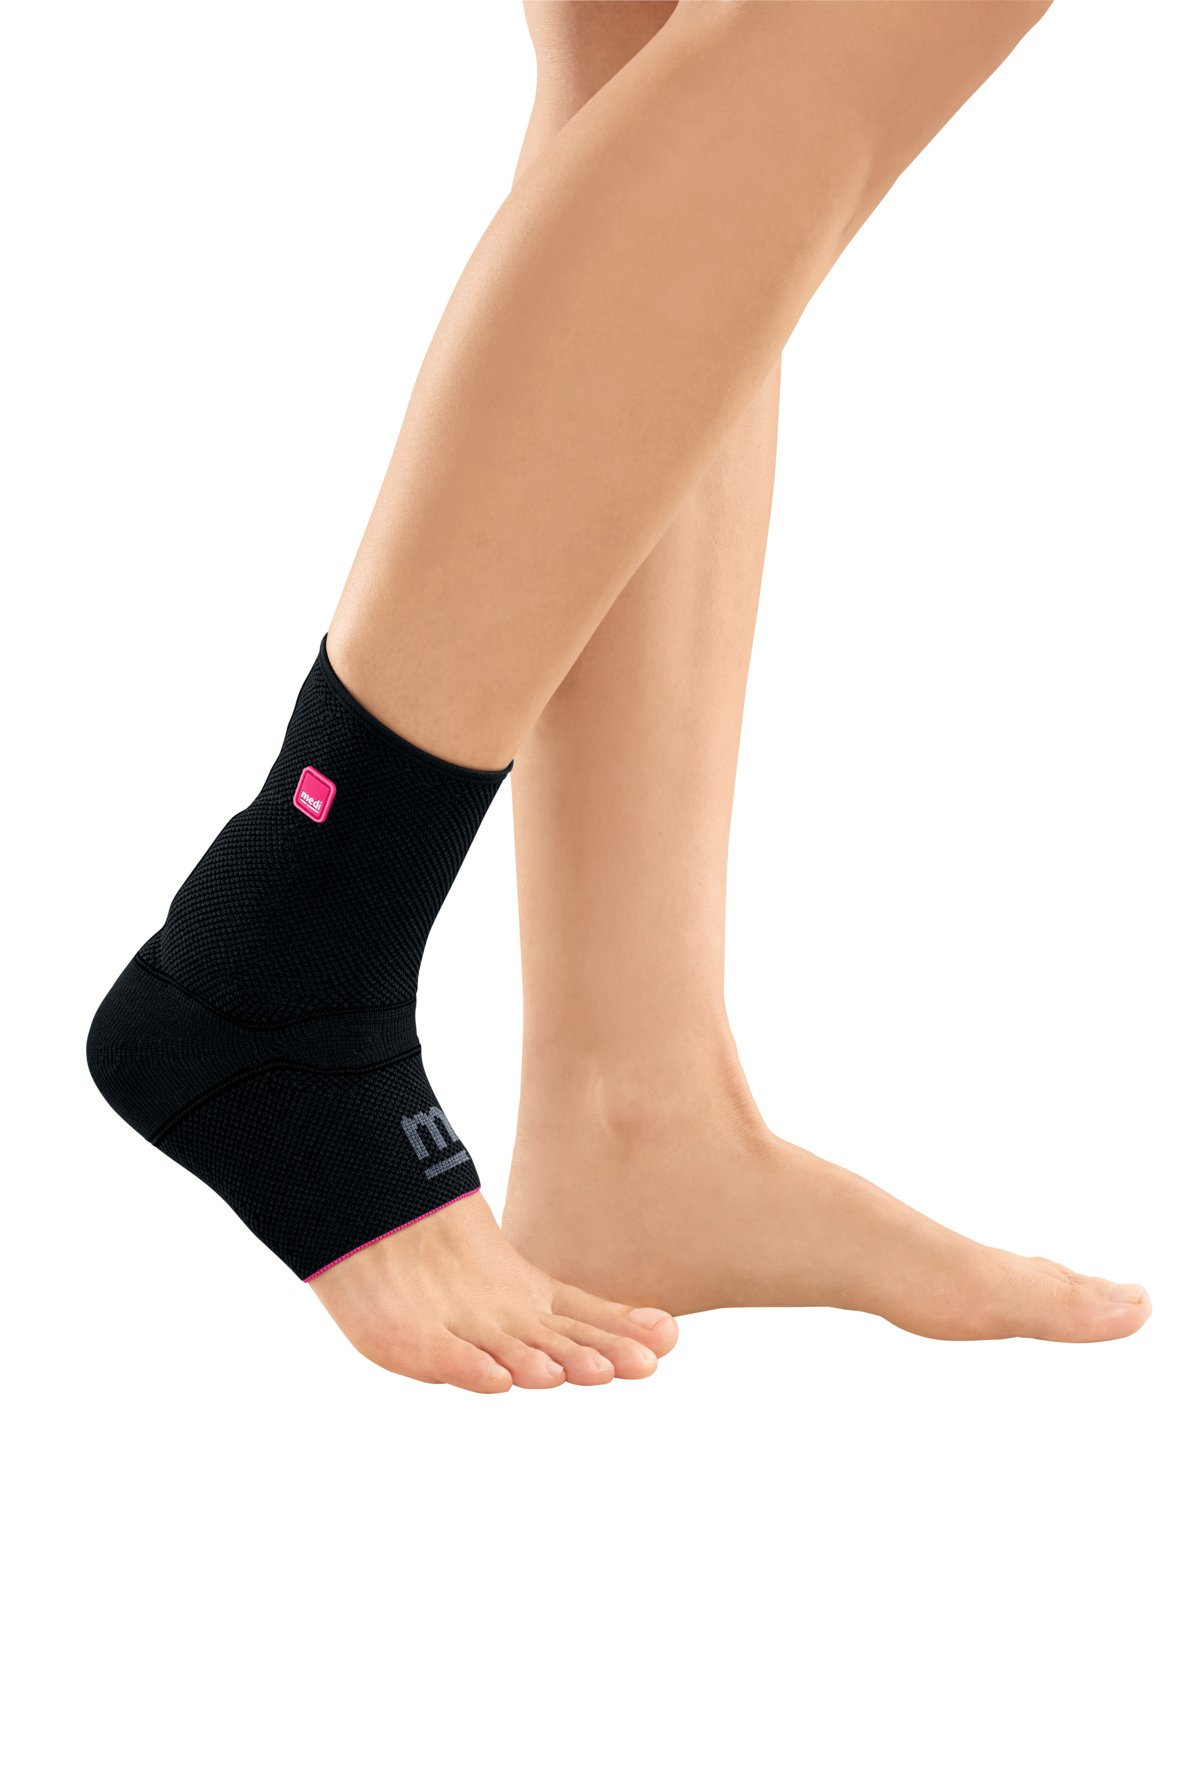 Medi Achimed Knit Ankle Support for Men & Women (Black) Size IV